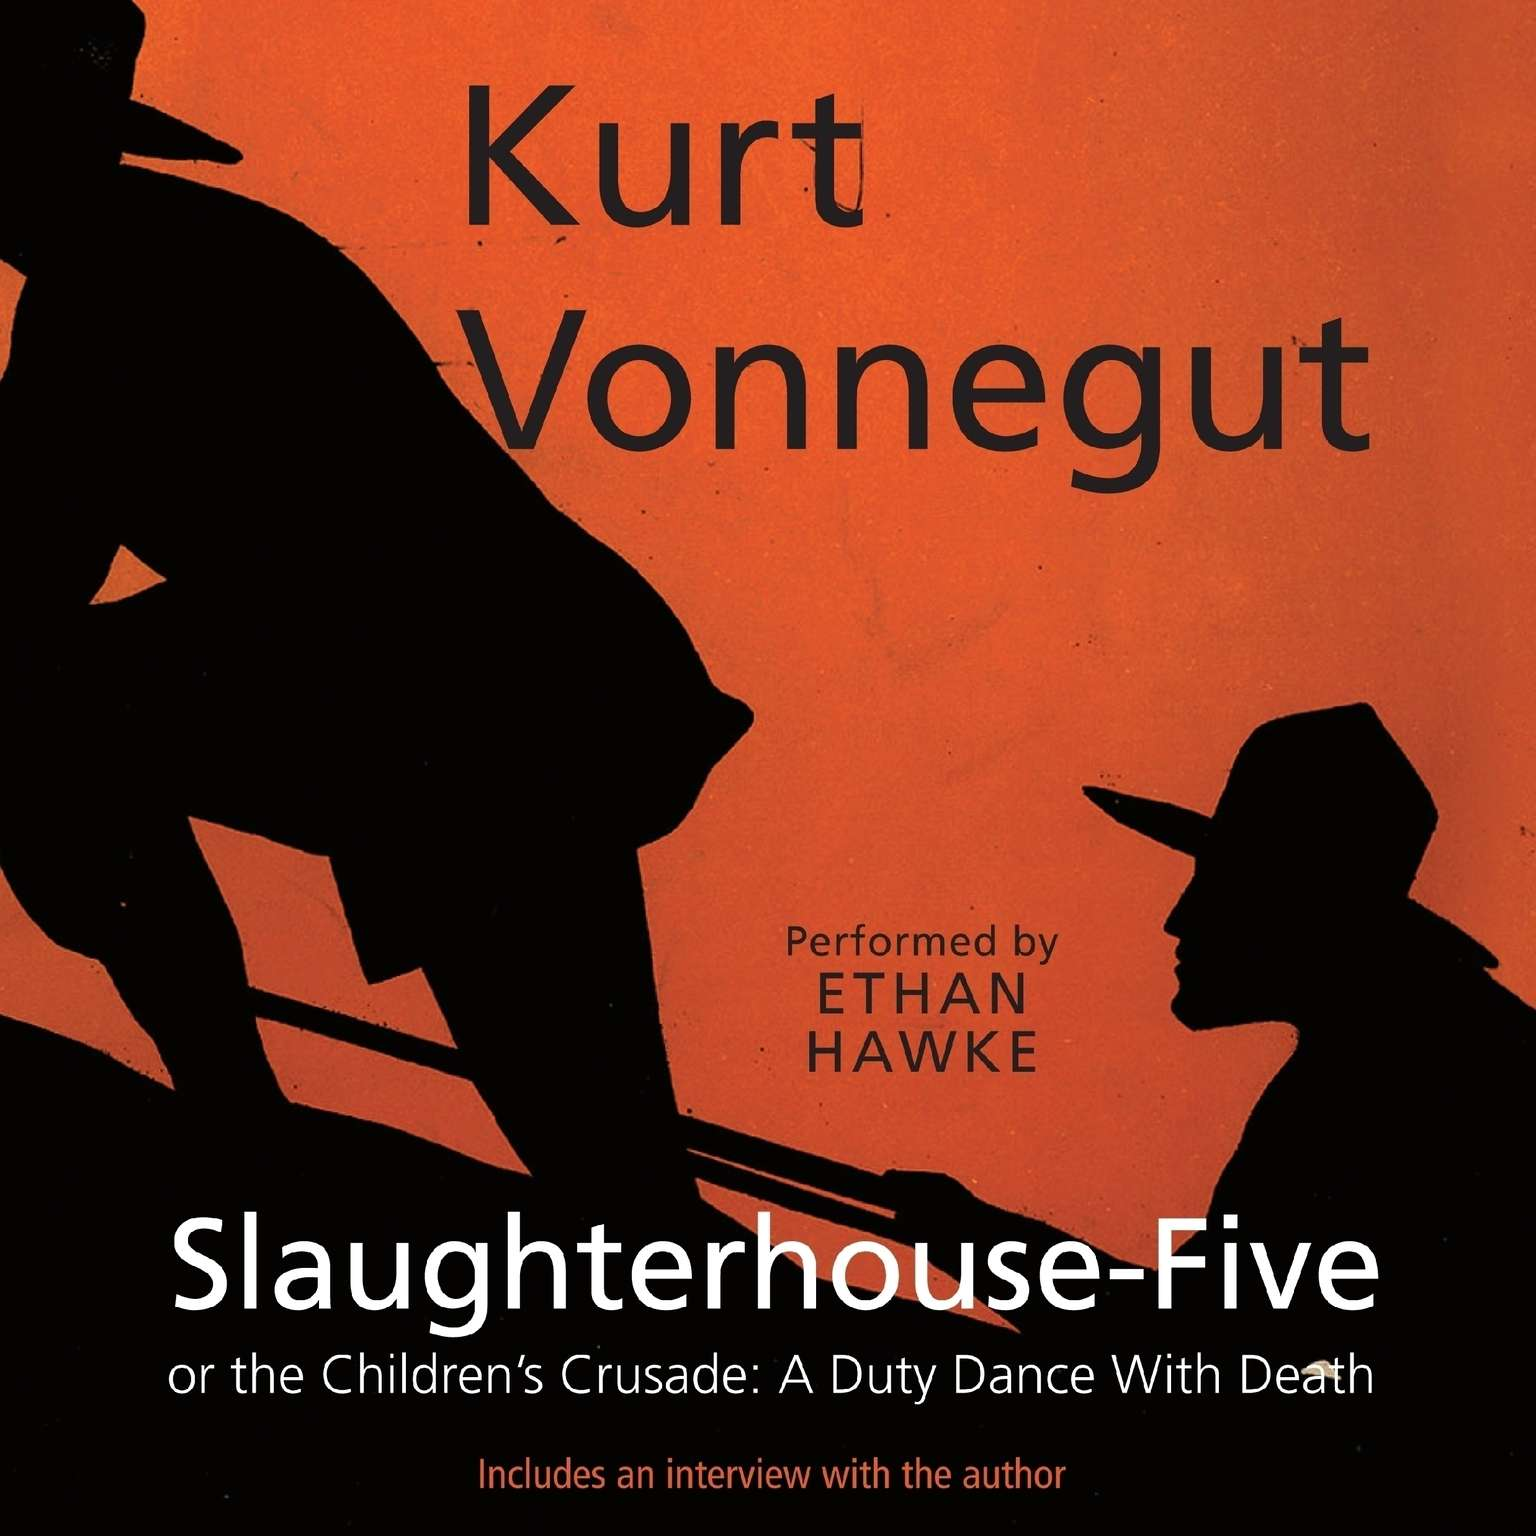 the assimilation of billy pilgrim to kurt vonnegut in slaughterhouse five Critics of kurt vonnegut's slaughterhouse-five, on the other hand, are not unanimously so willing to grant say, billy pilgrim escapes into a quietistic fantasy world (146), but for them, billy himself is an object of satire human beings become mere matter and are assimilated into the non-human [] snowden [] spills his.